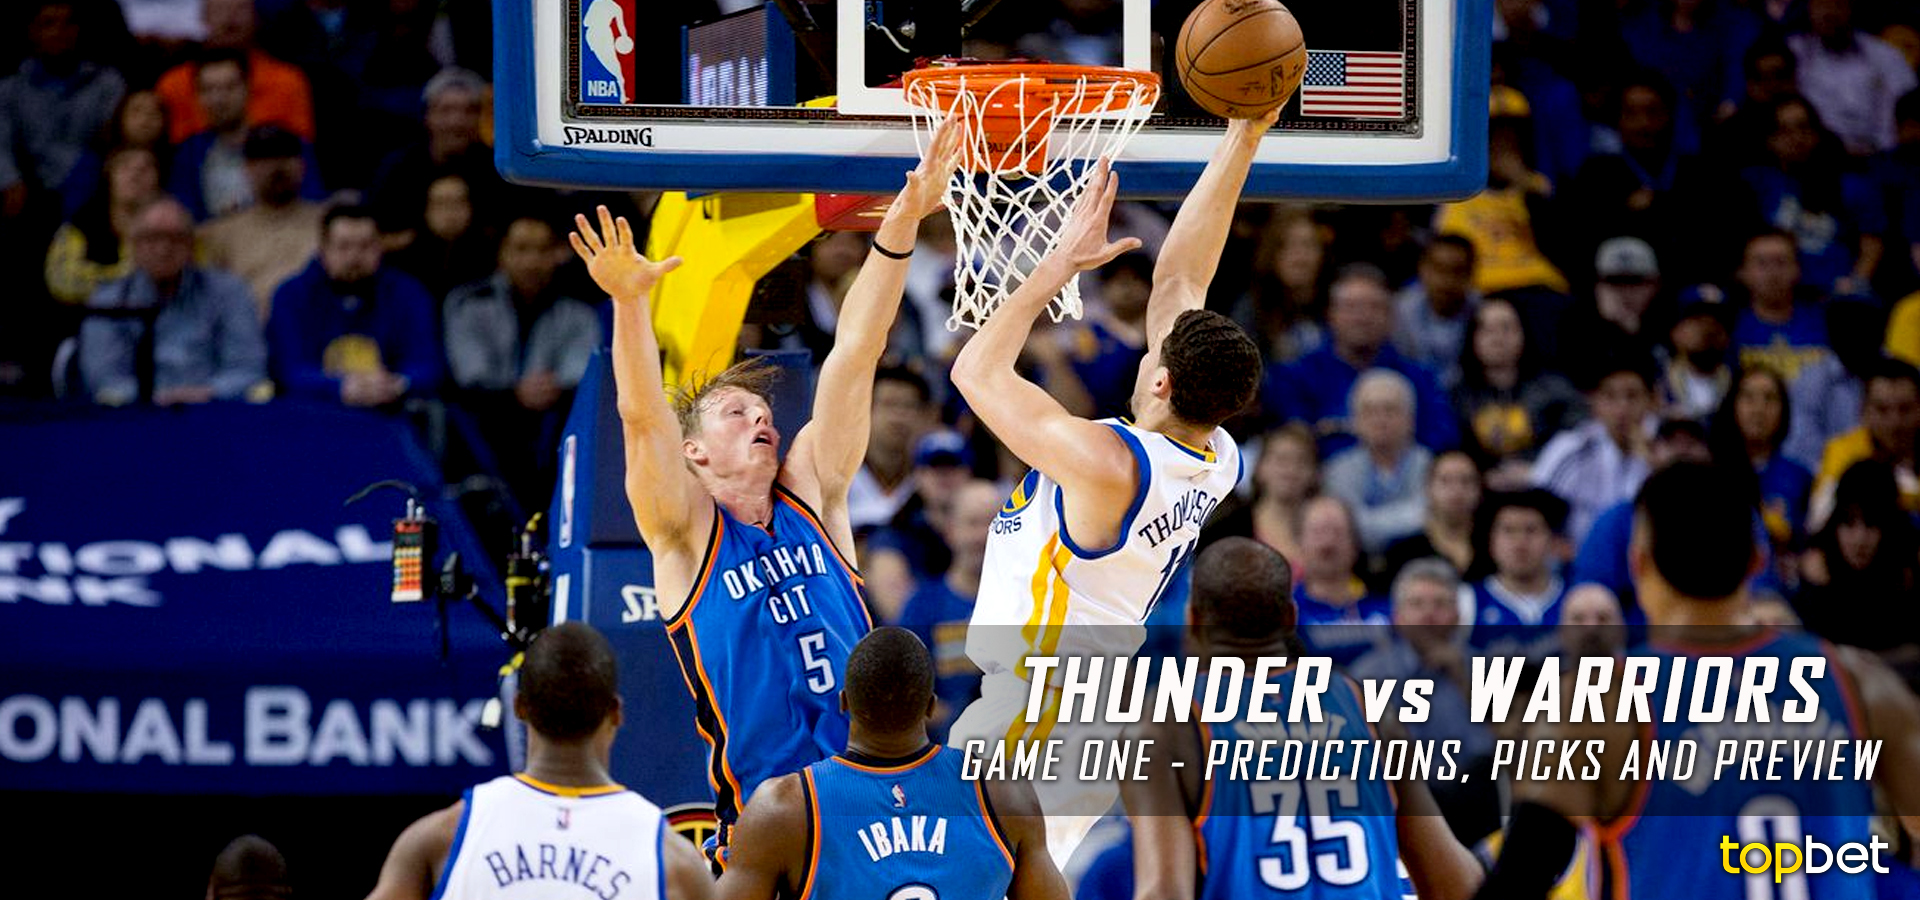 Thunder vs Warriors Series Game 1 Predictions, Picks, Odds